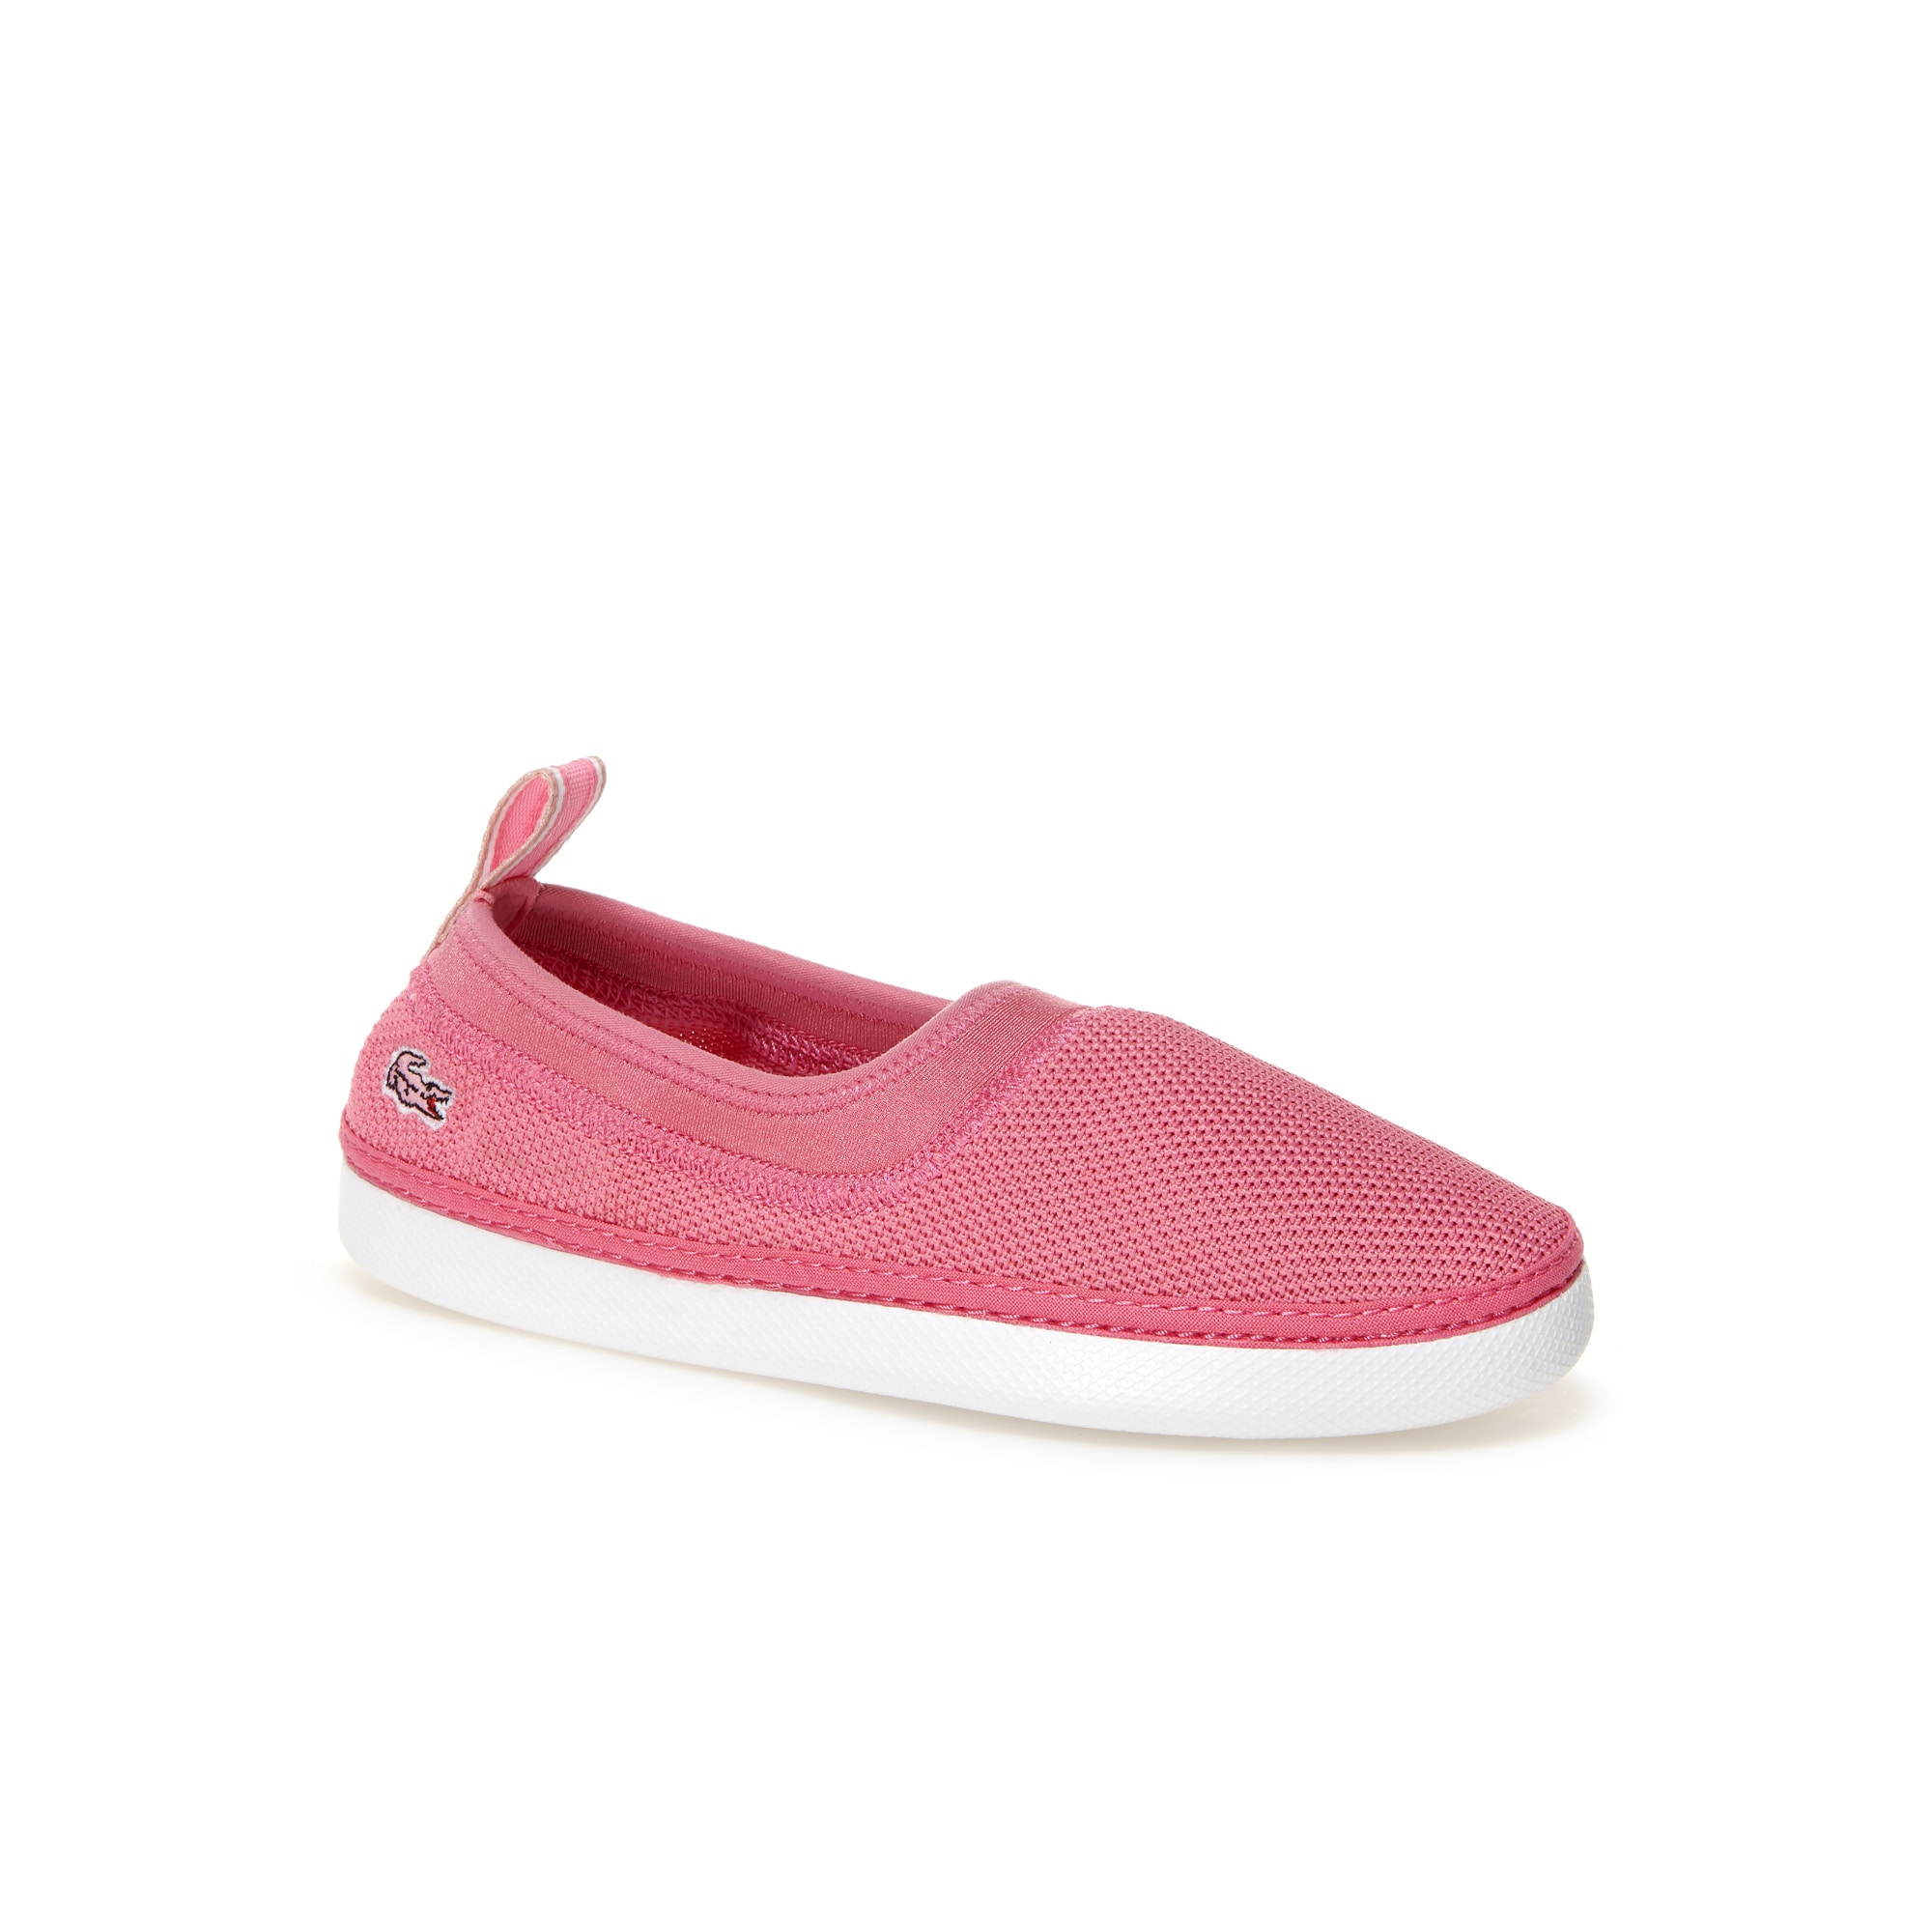 Childrens' L.ydro Textile Slip-ons